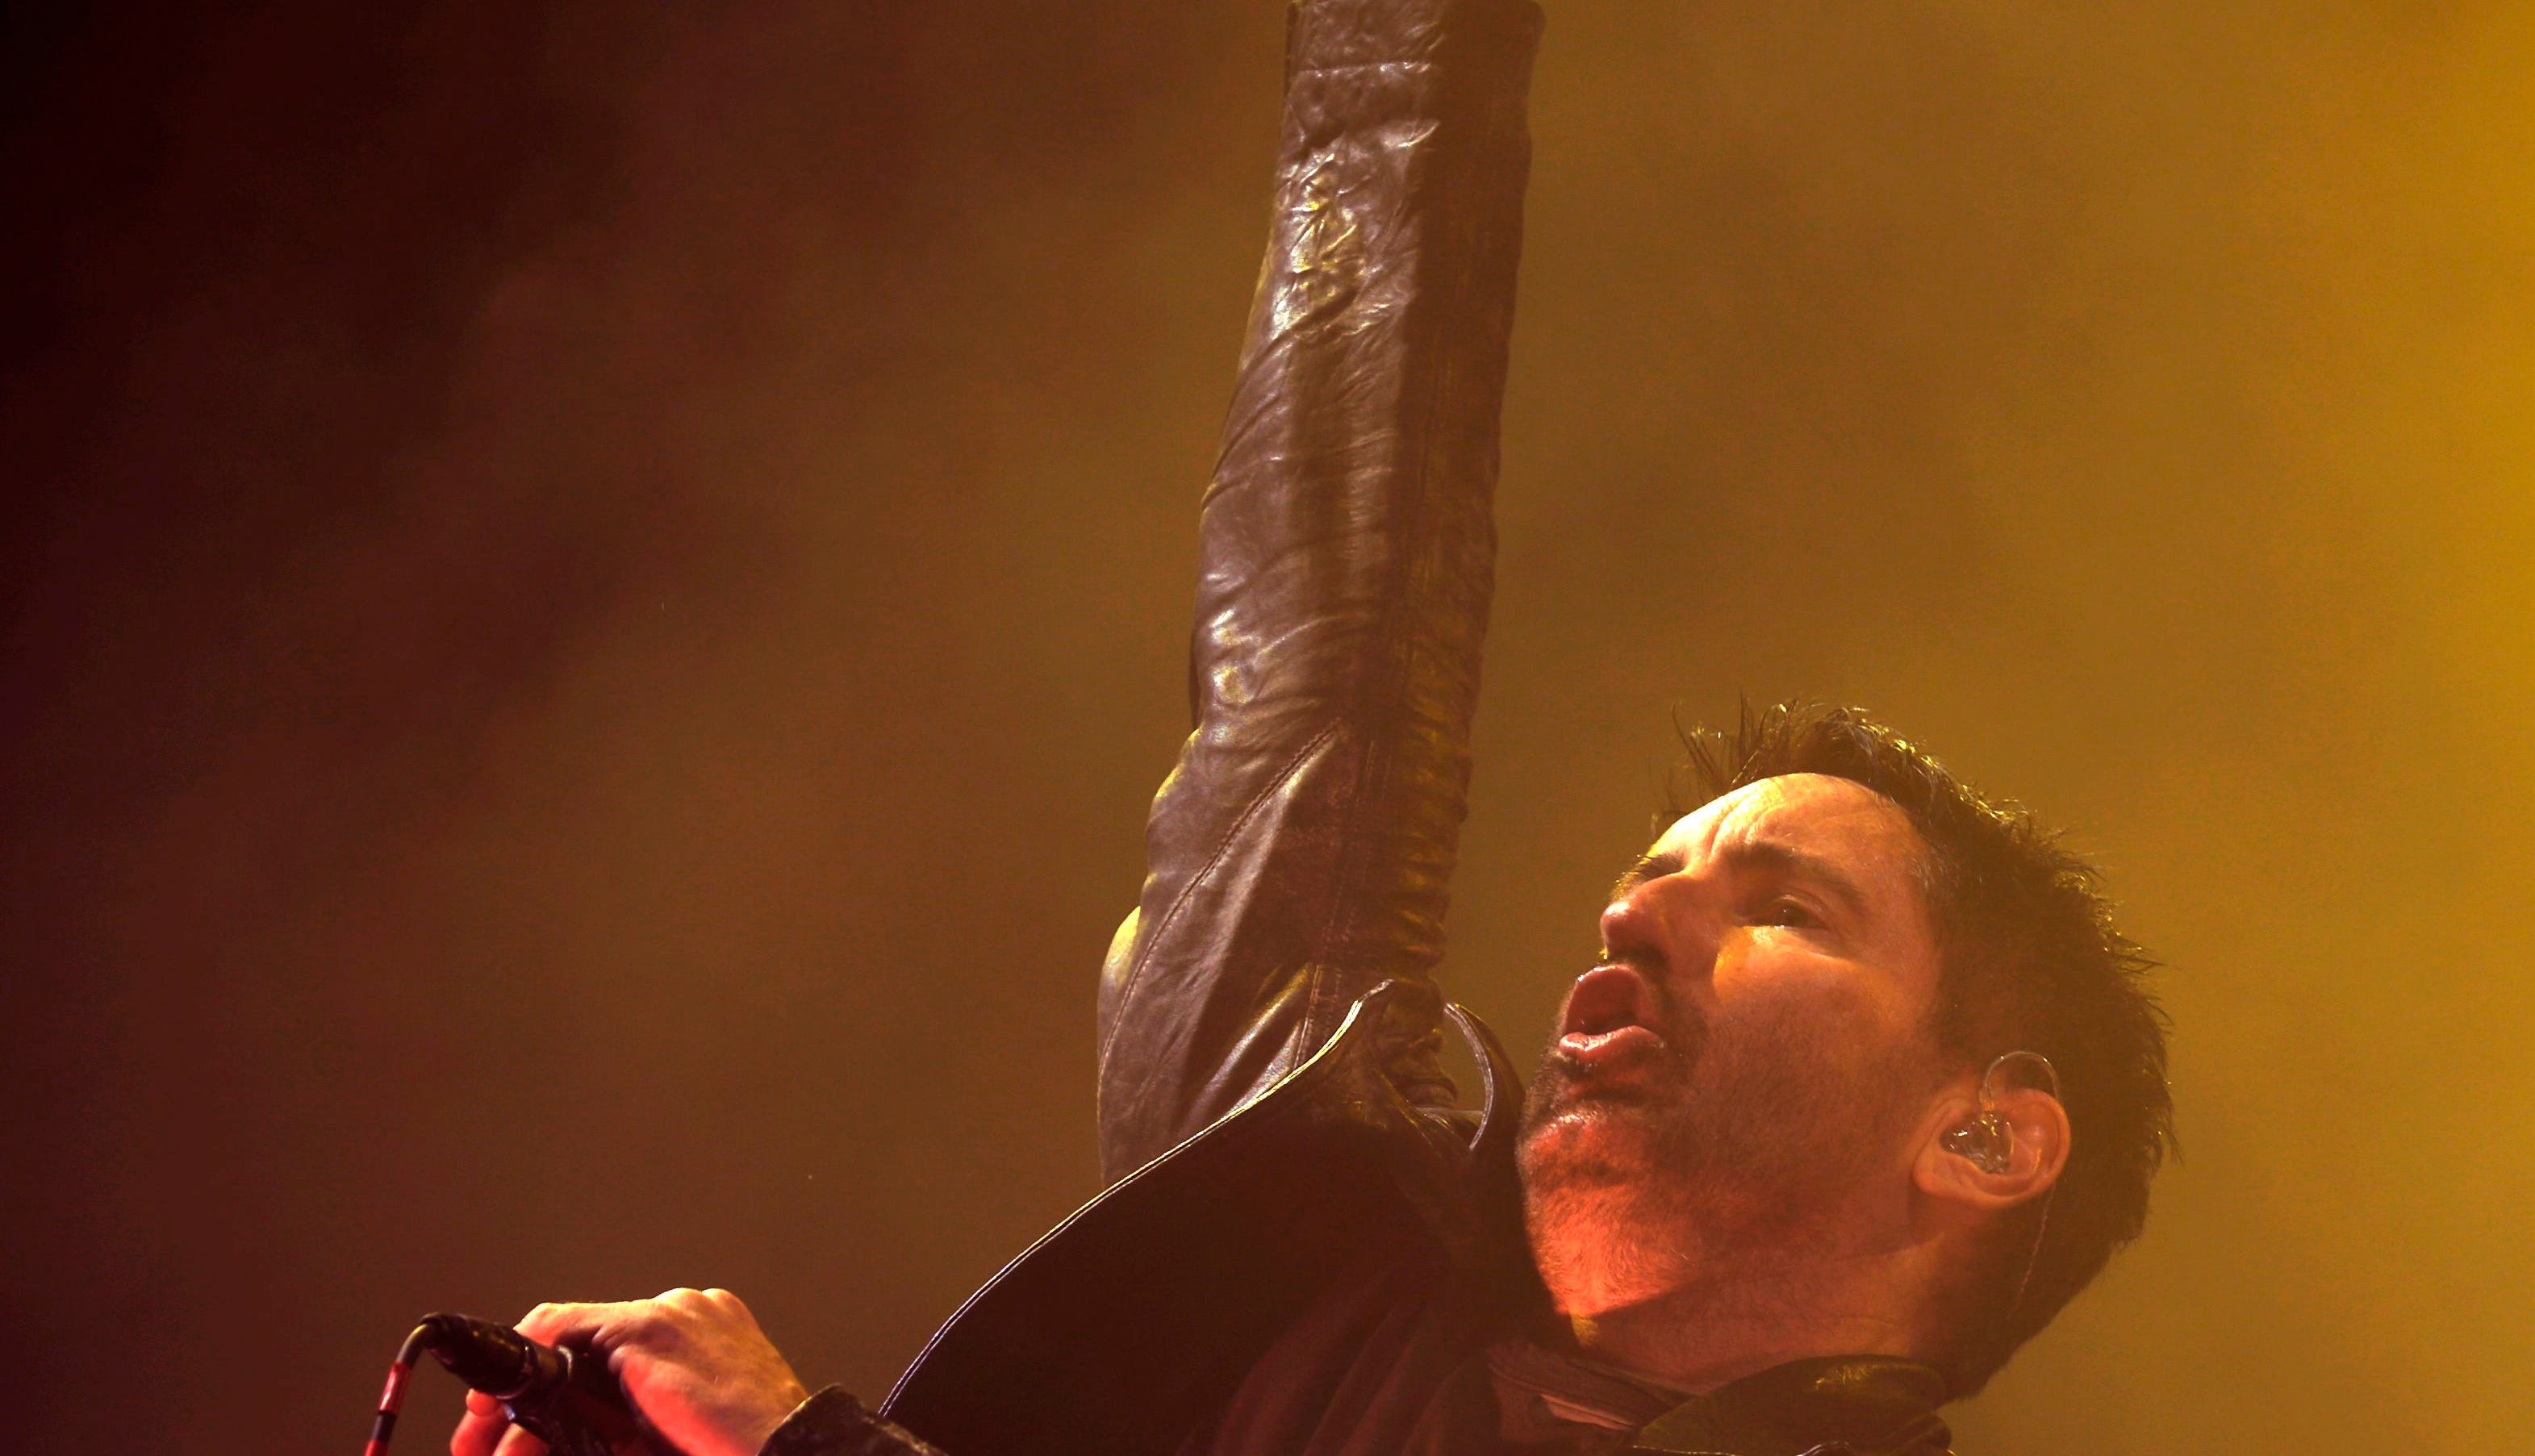 Trent Reznor of Nine Inch Nails performs during the 12th Alive Music Festival in Oeiras, Portugal, on July 12, 2018.